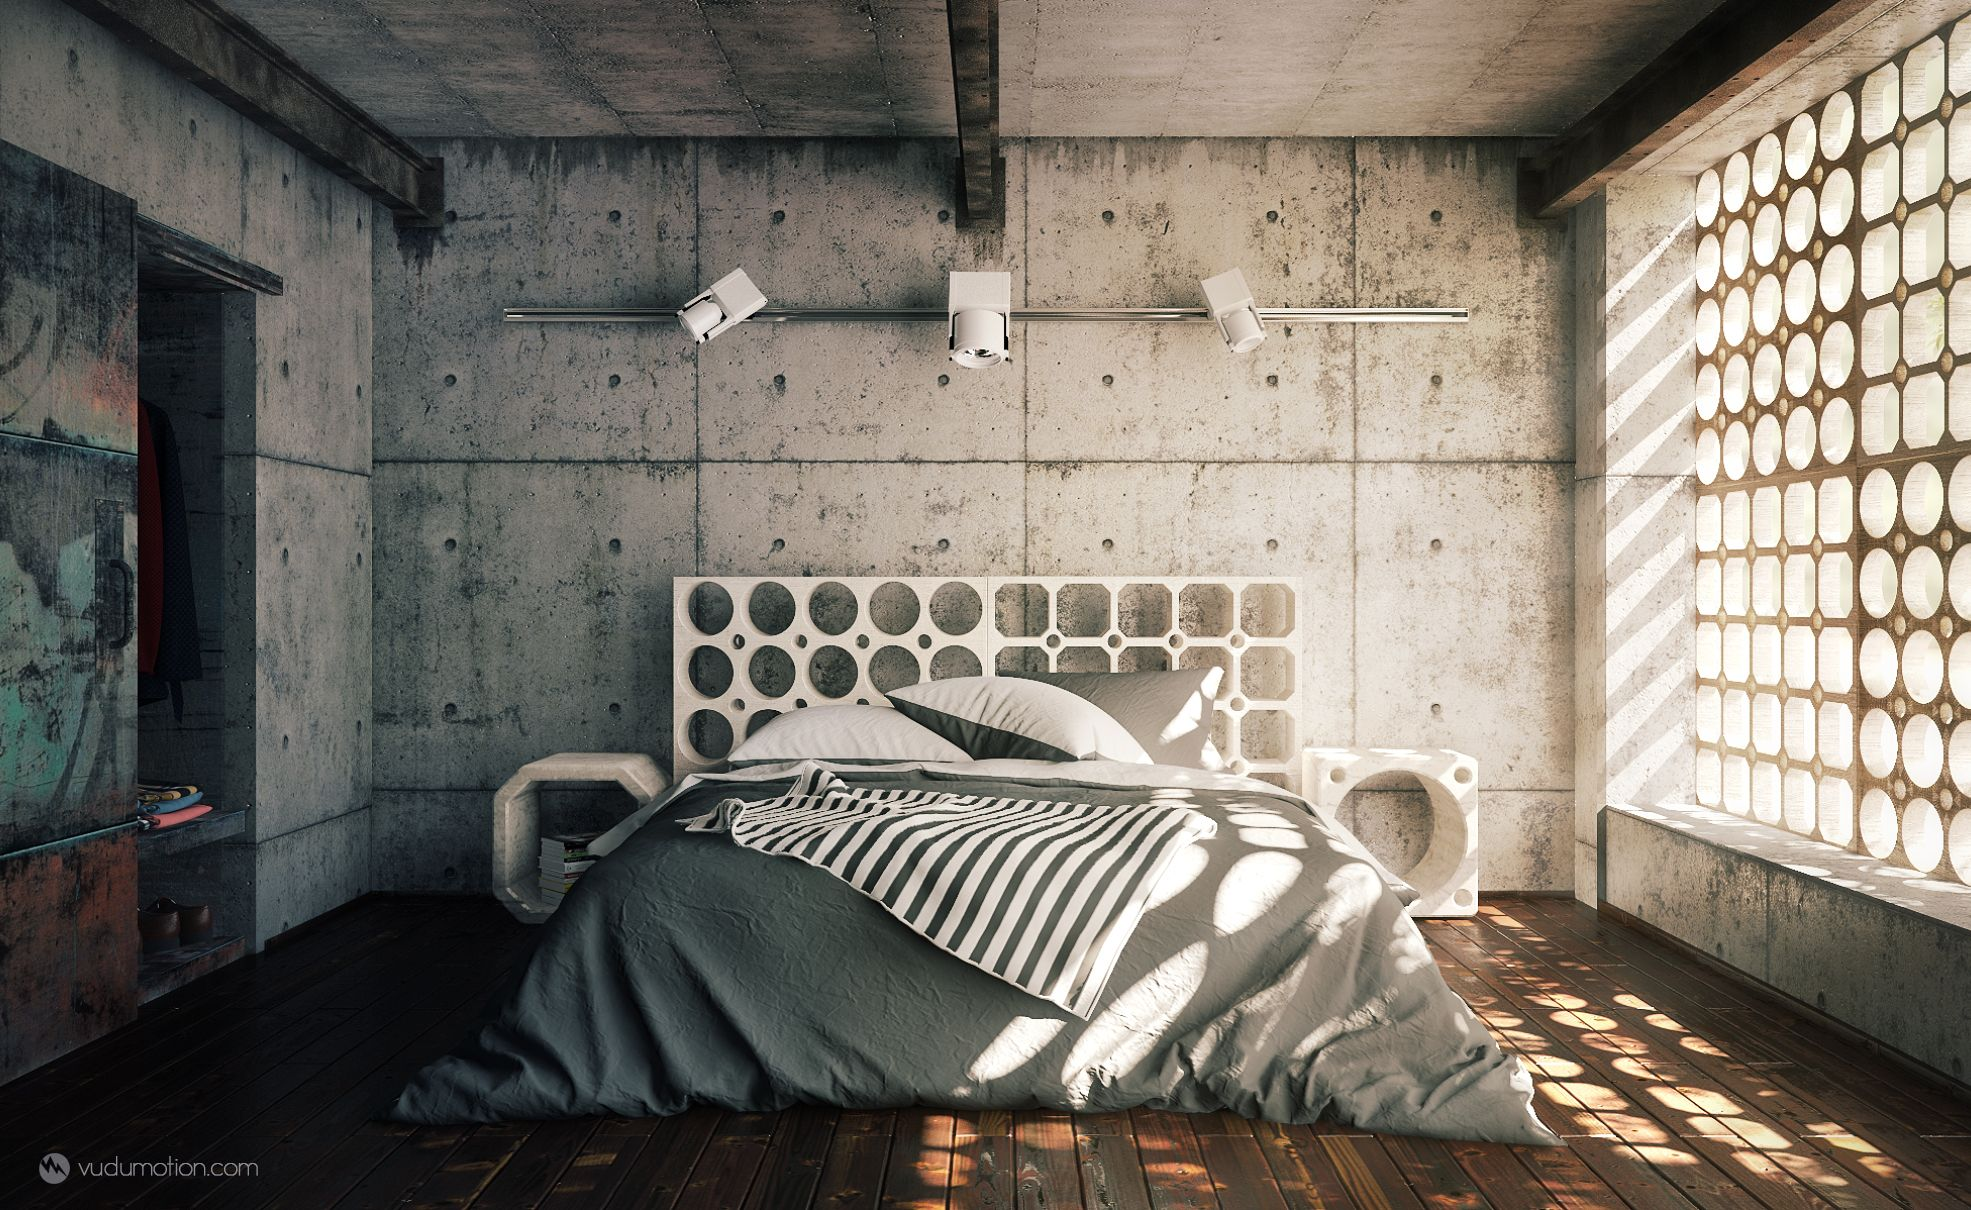 Industrial Bedroom Im a huge fan of industrial style interiors